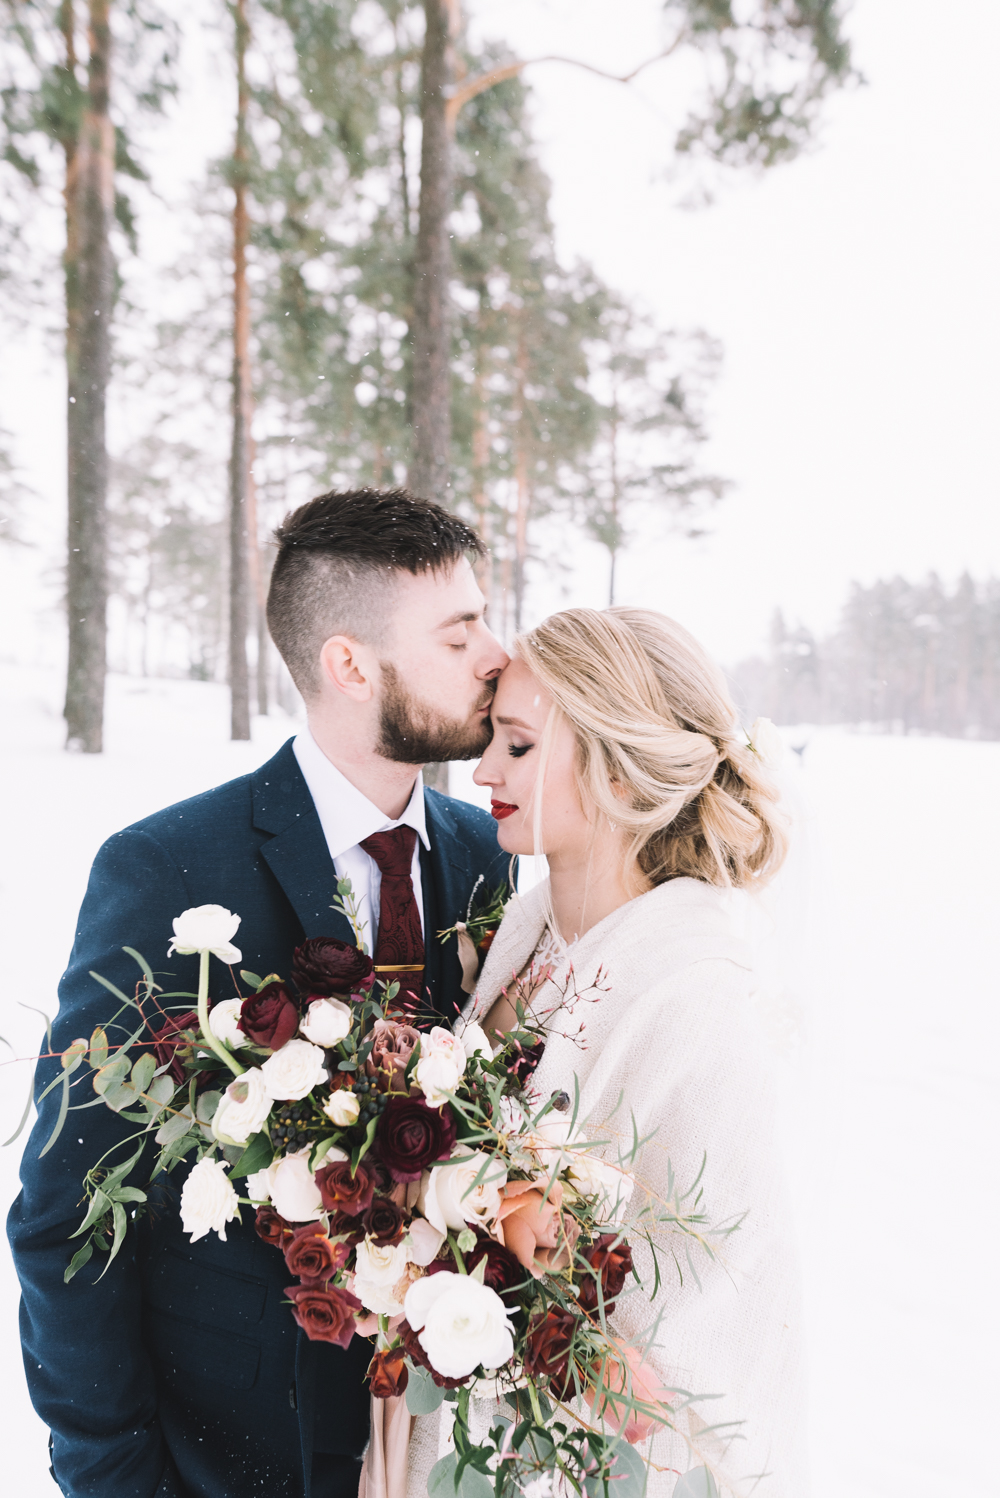 Finland Wedding Photography, Destination Wedding Photographer